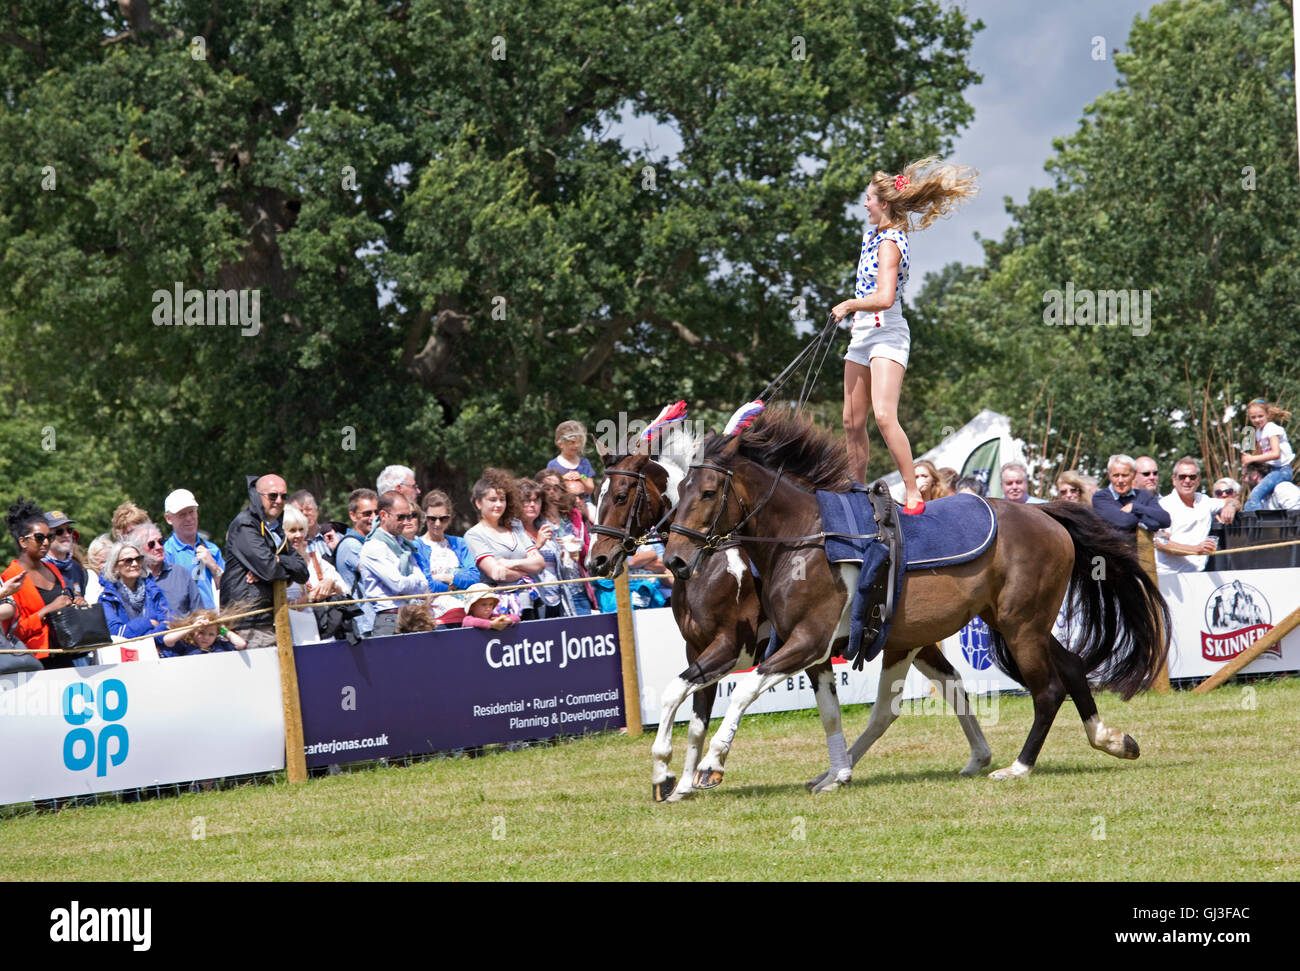 Crowds watch girl straddling backs of two galloping horse Countryfile Live Blenheim UK - Stock Image